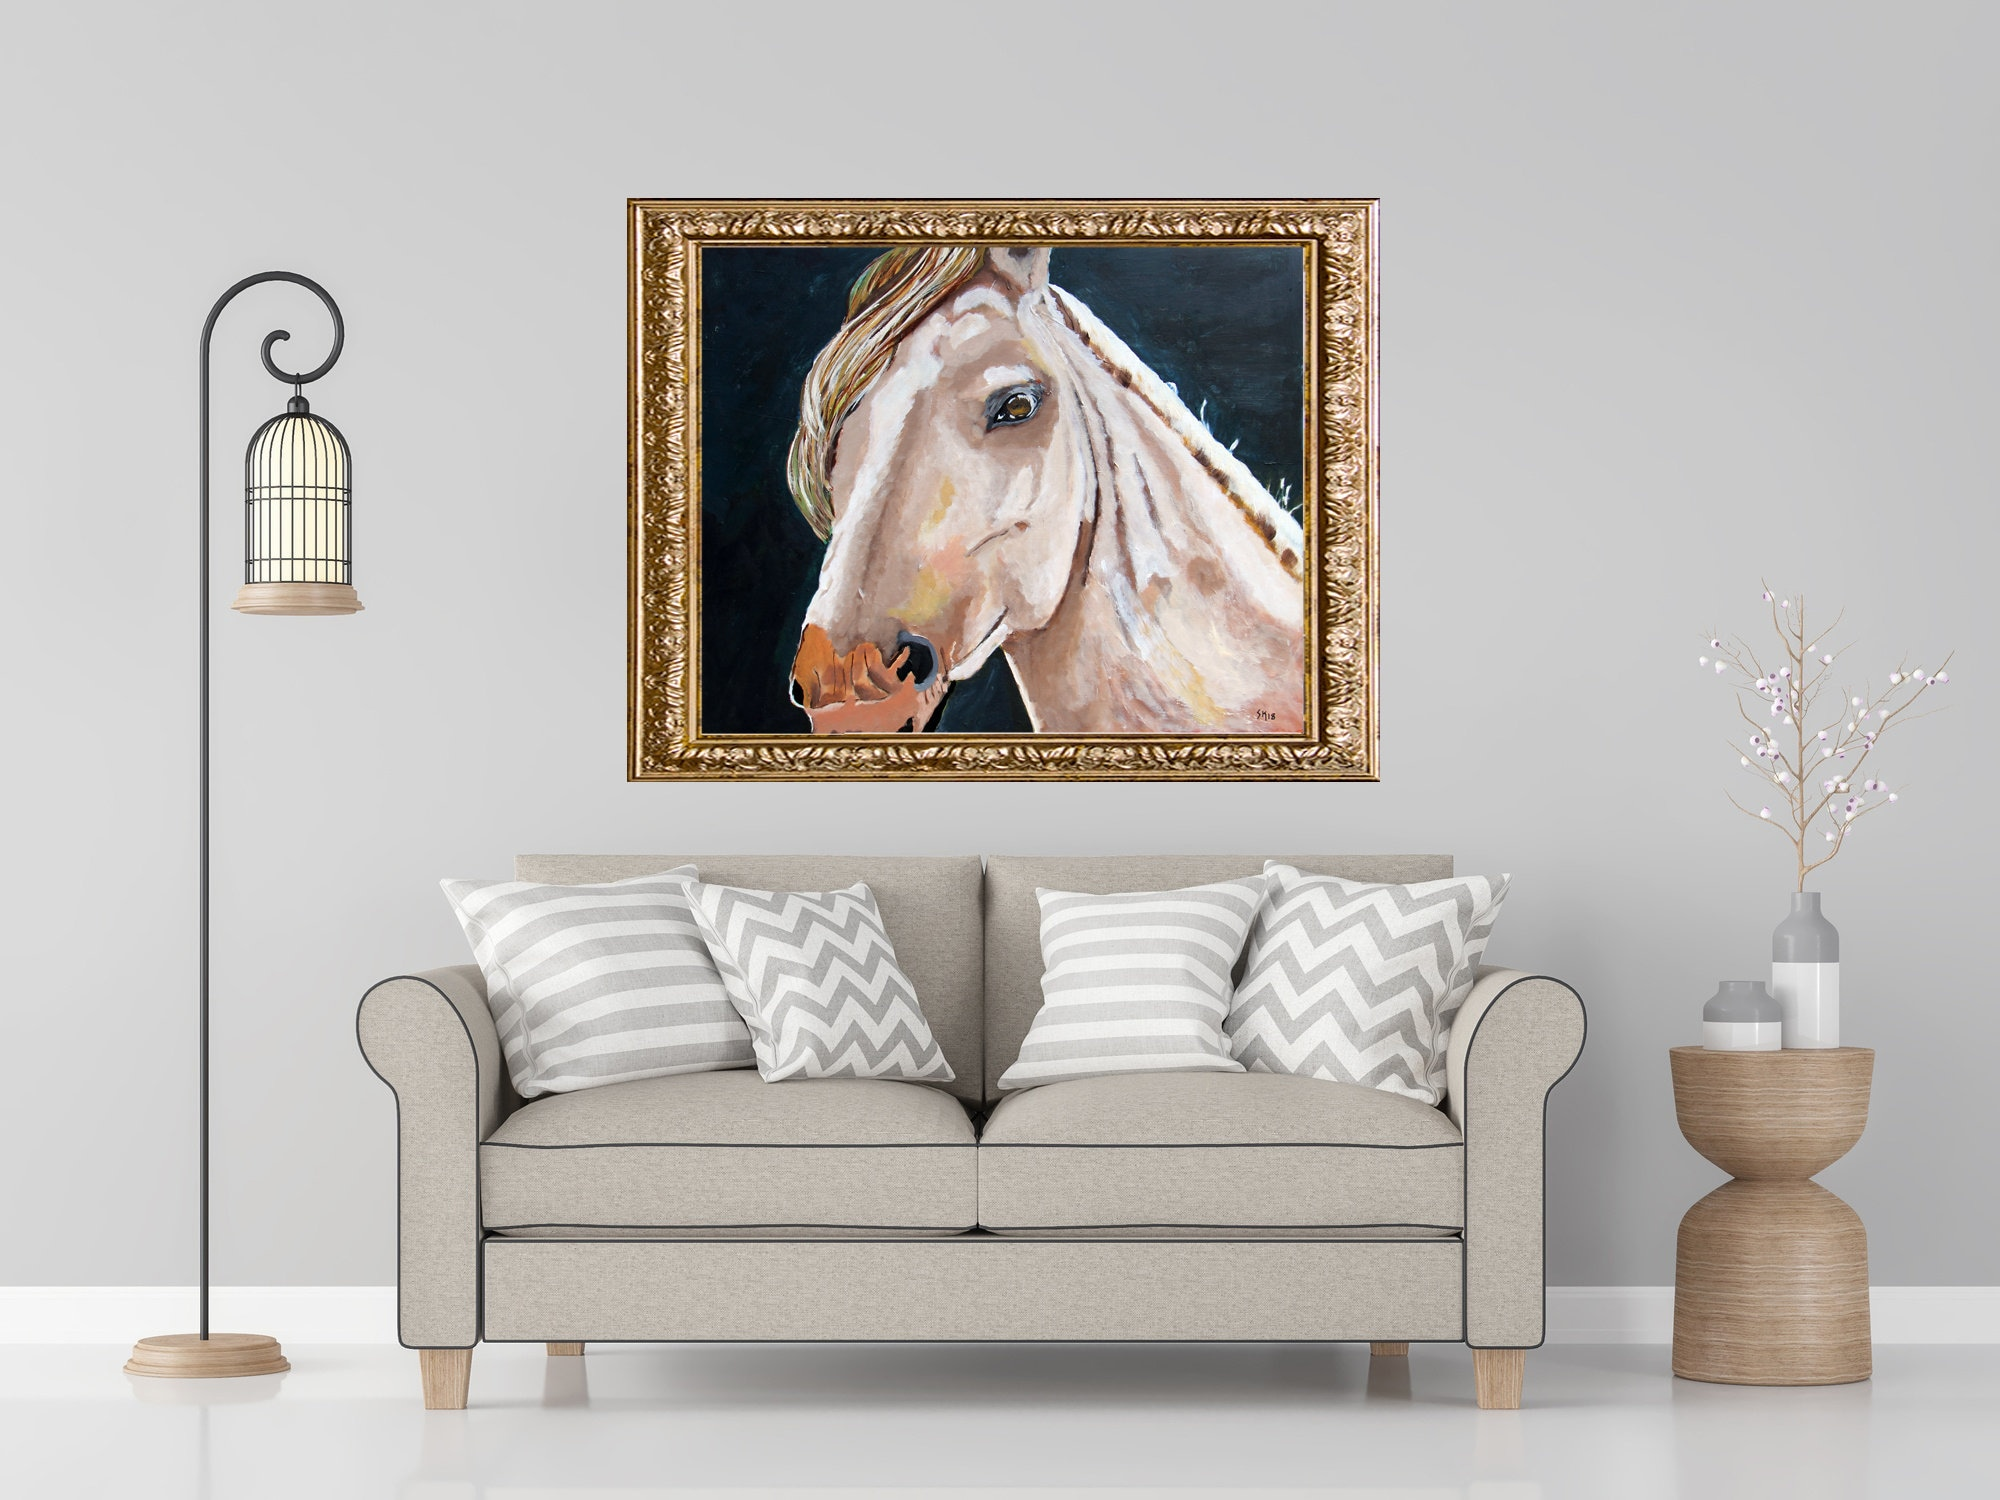 Humble | WildLife | Nature | Woods | Horse | Original Painting | Decor |  Acrylic Painting | Wall Art | Nursery | School